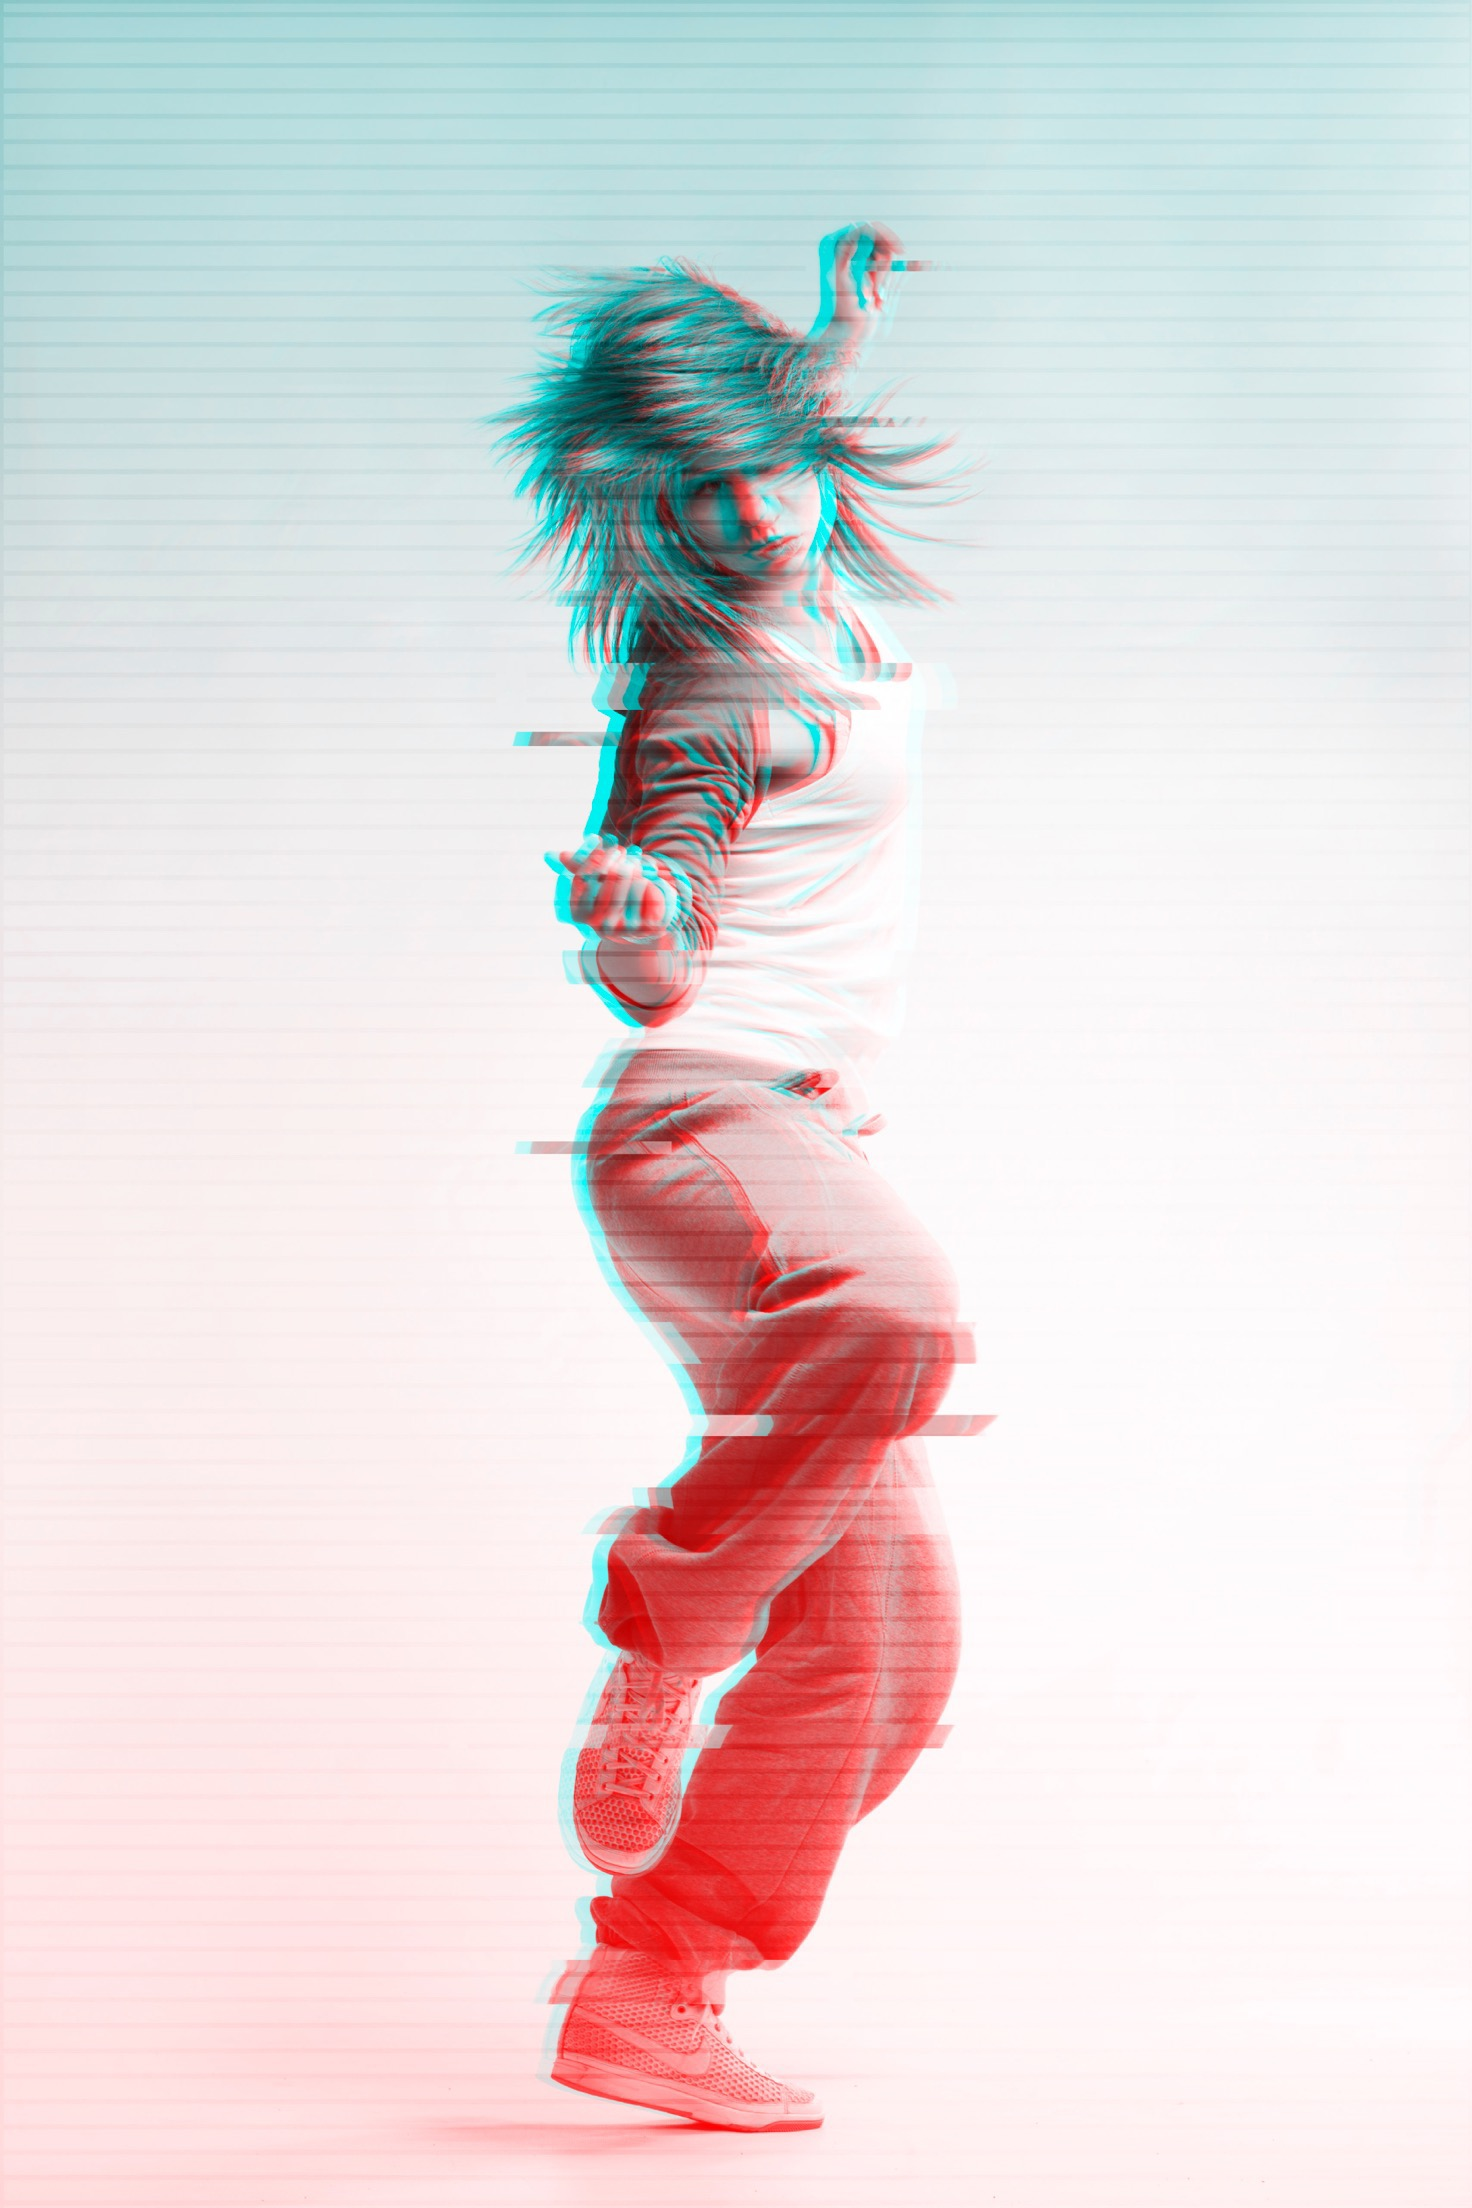 Photo egffet glitch source Behance